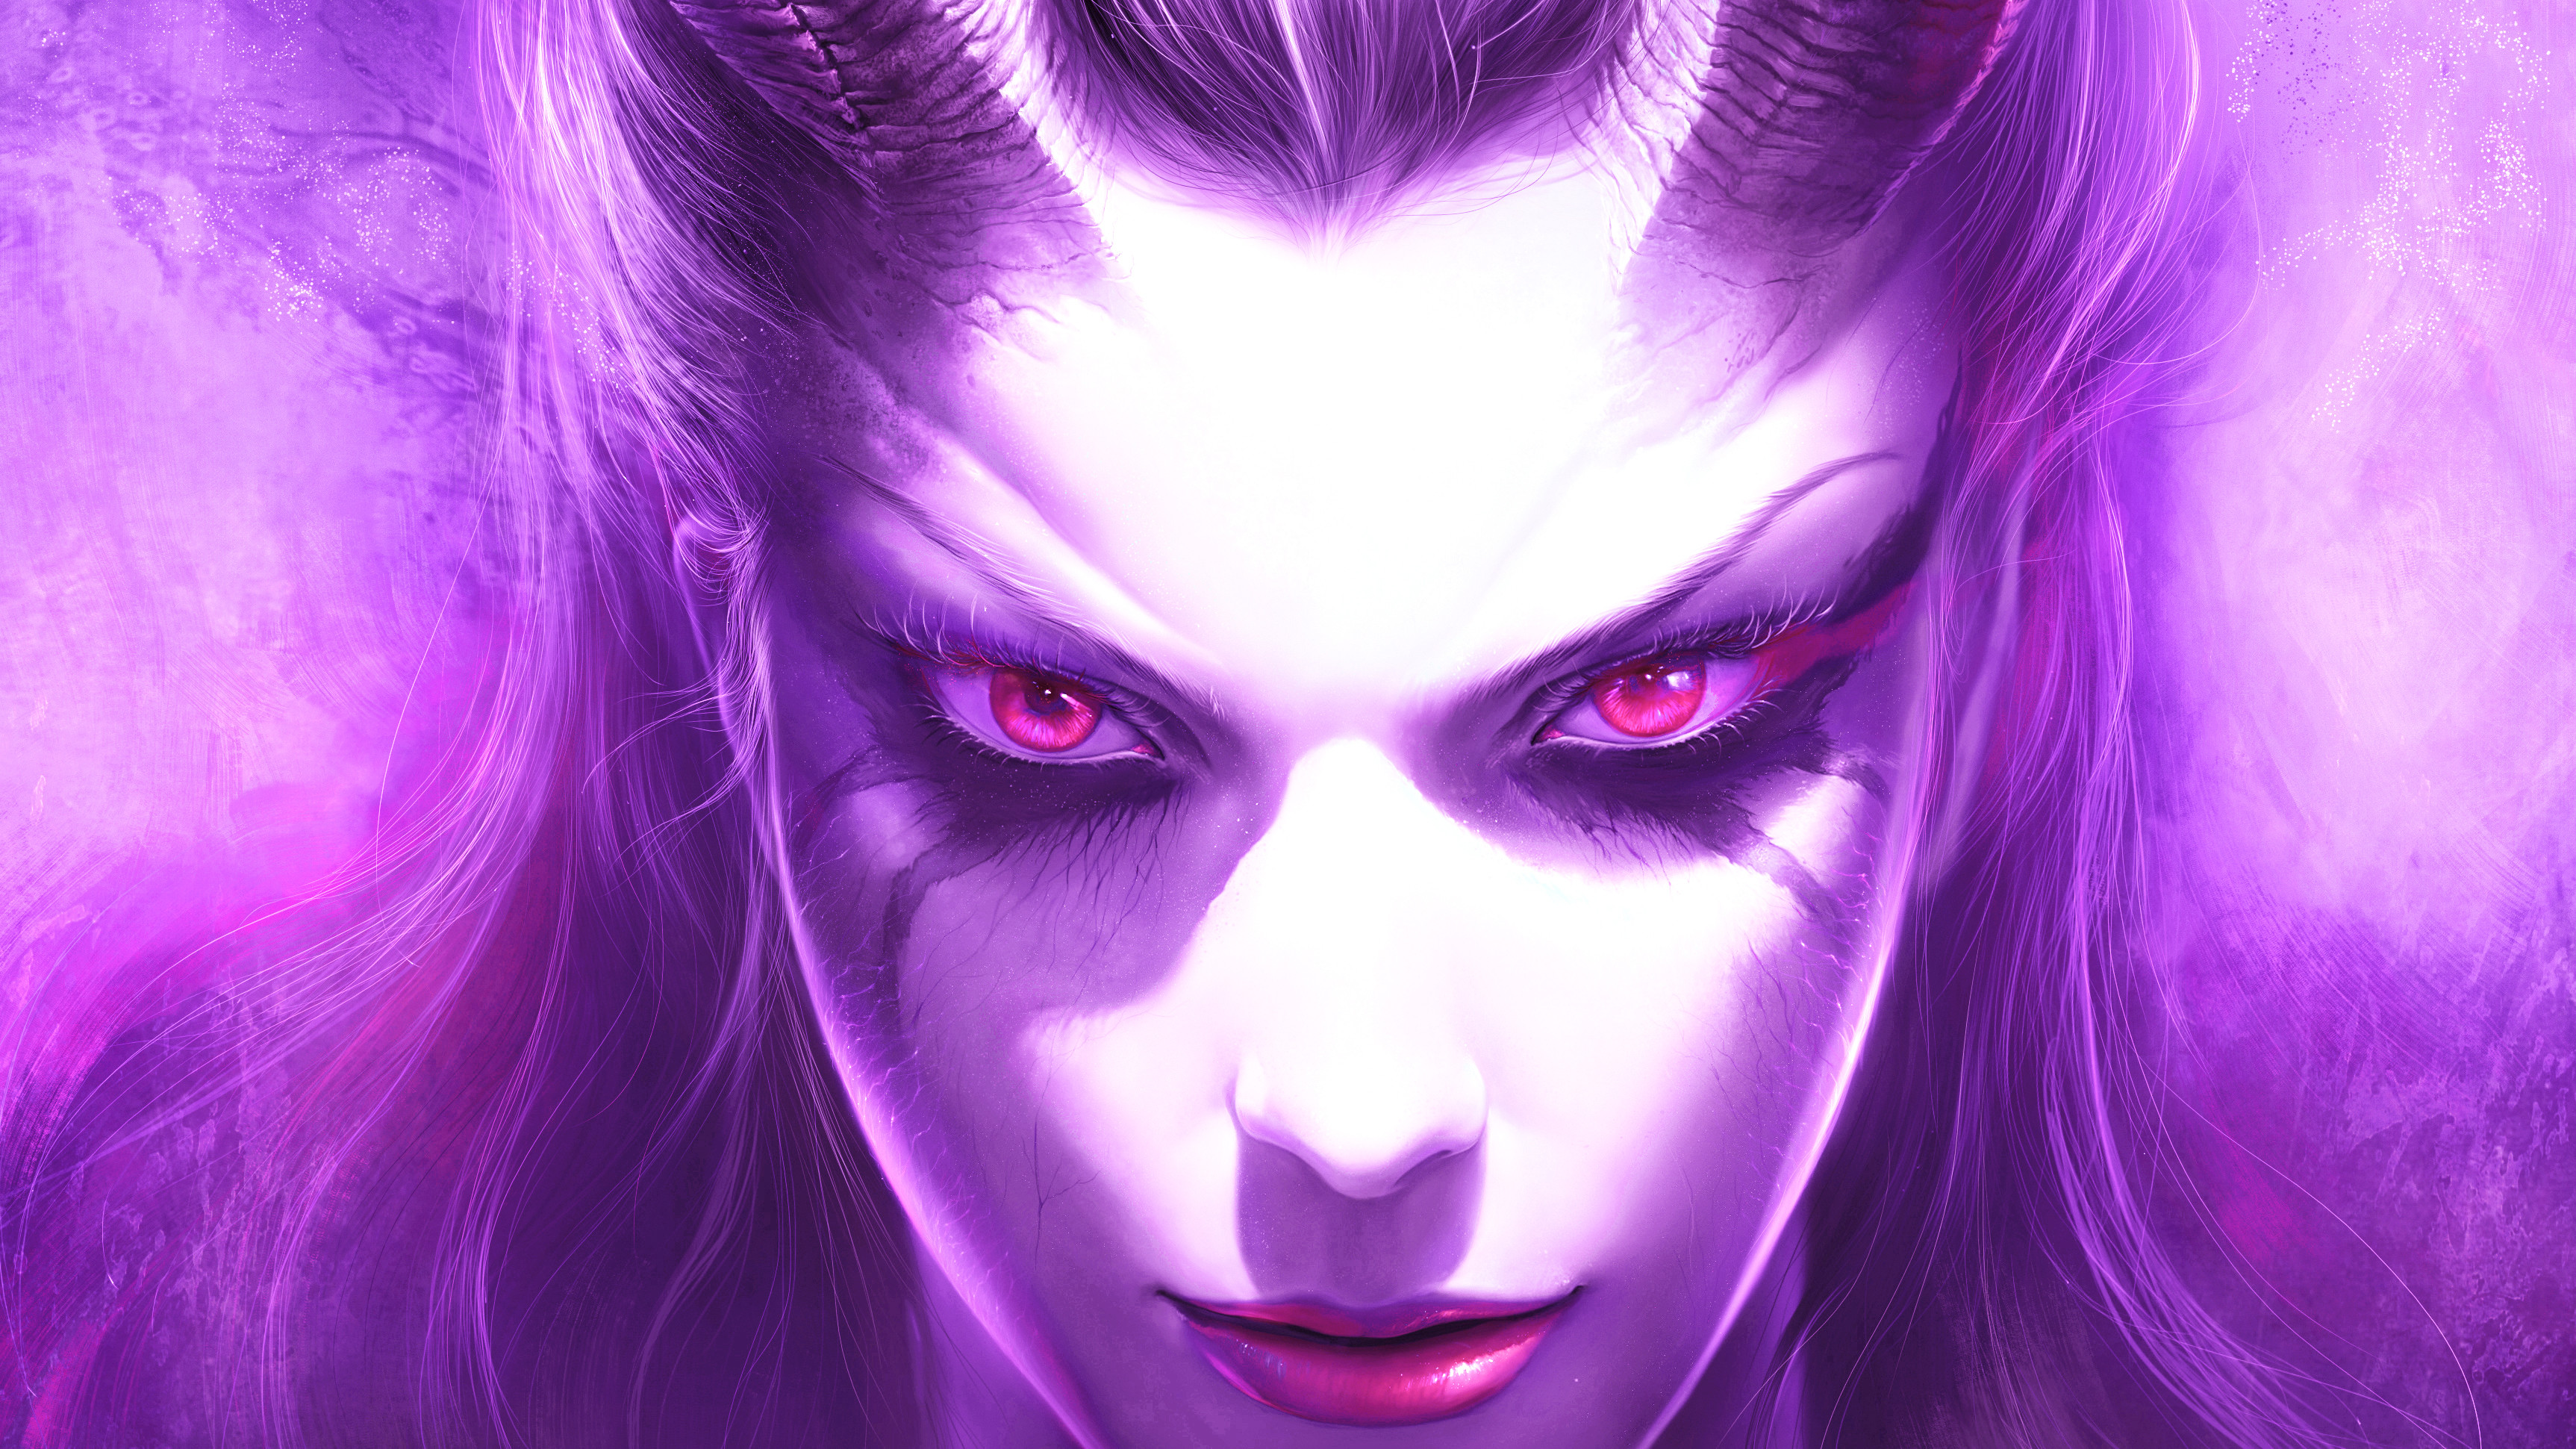 Queen of Pain HD Wallpaper | Background Image | 3451x1941 ...